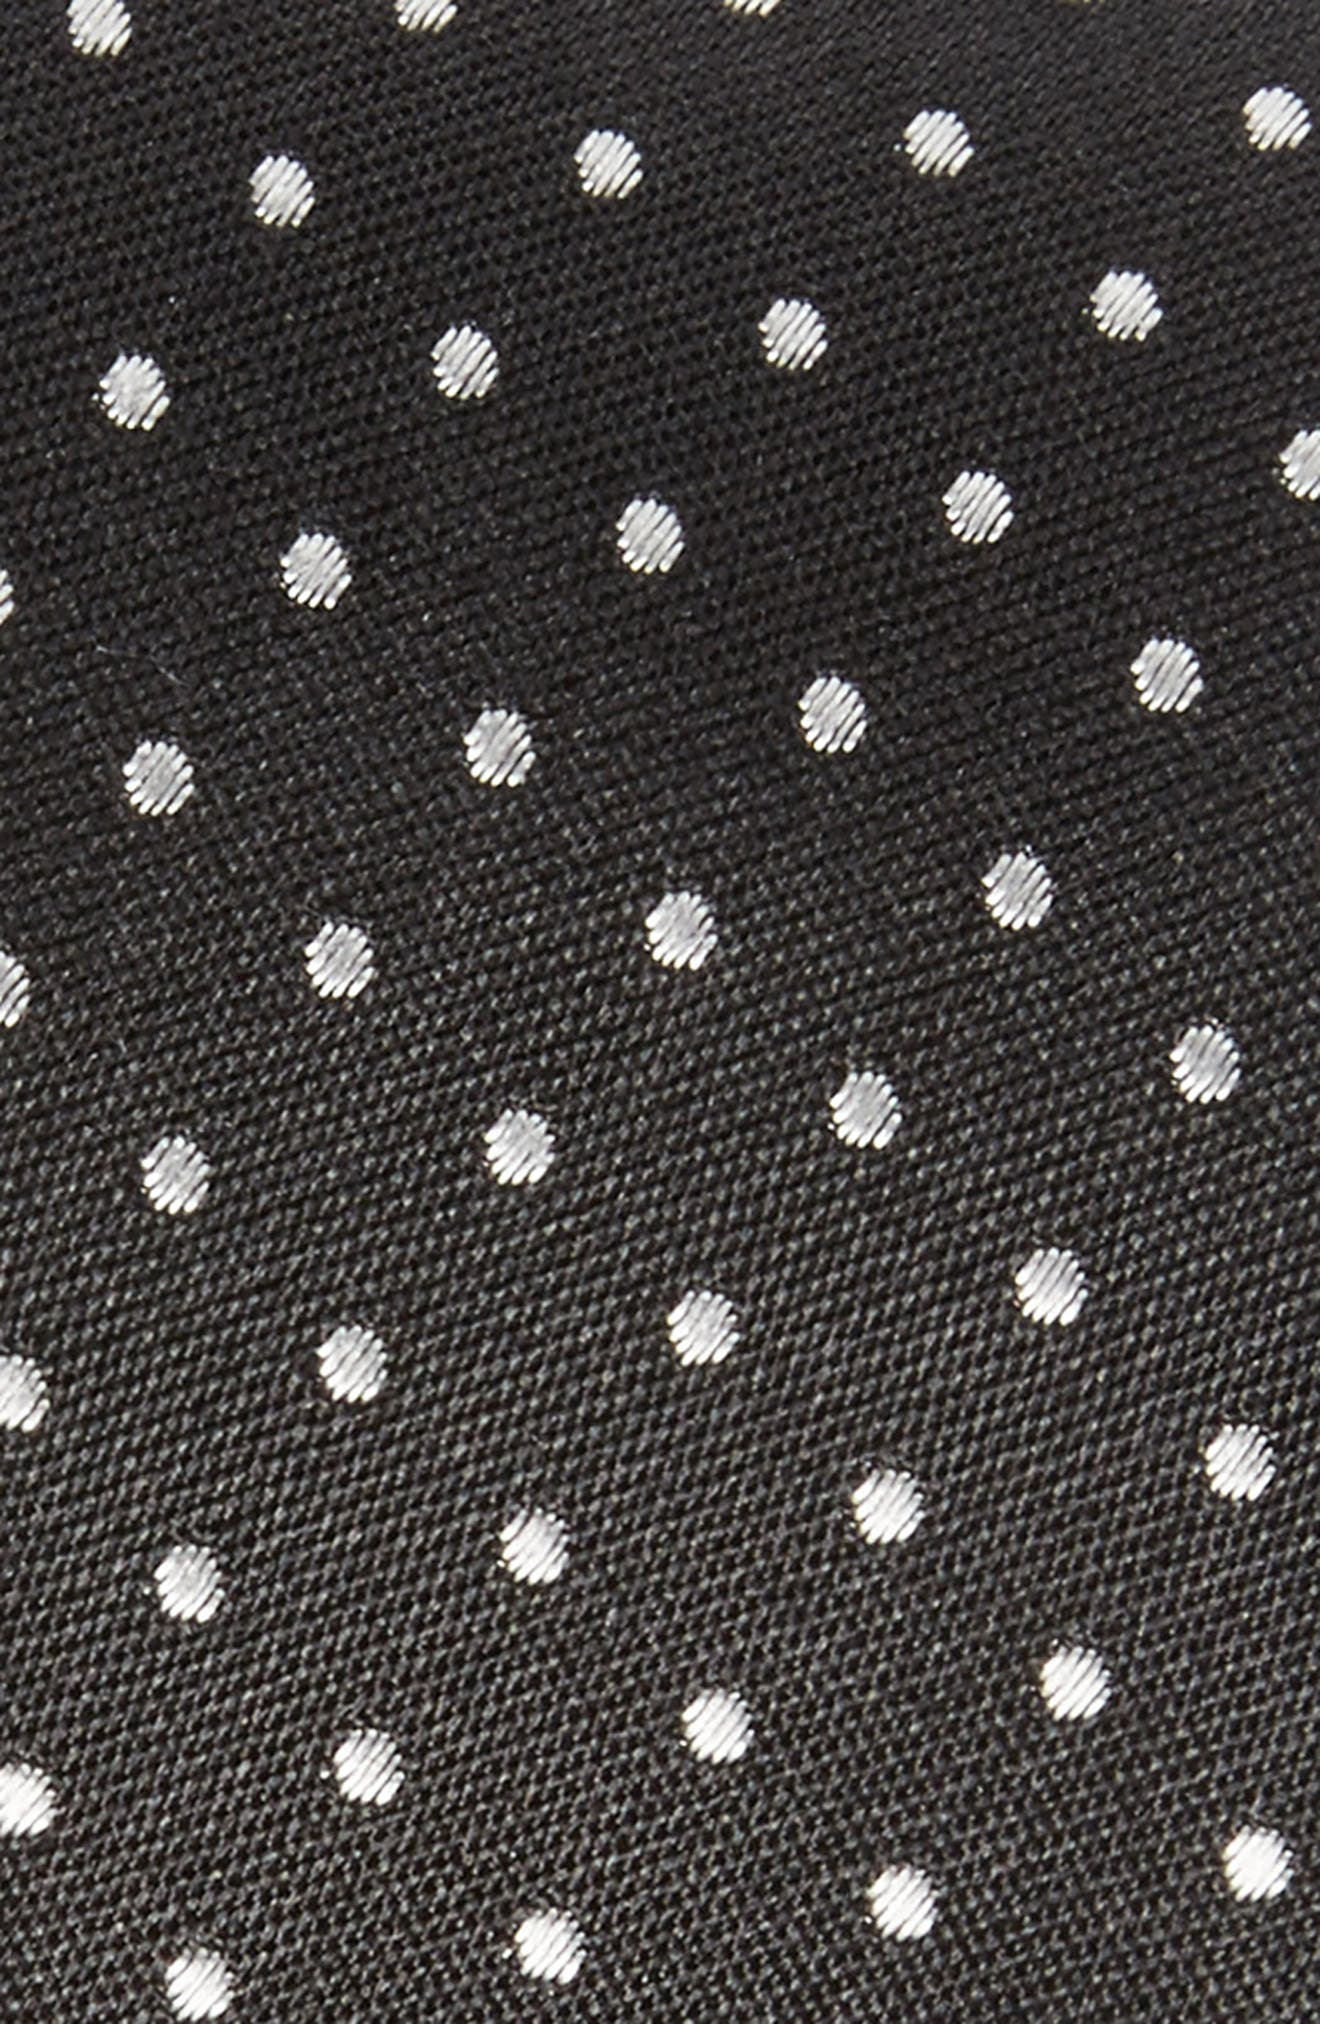 Alternate Image 2  - The Kooples Dot Skinny Silk Tie